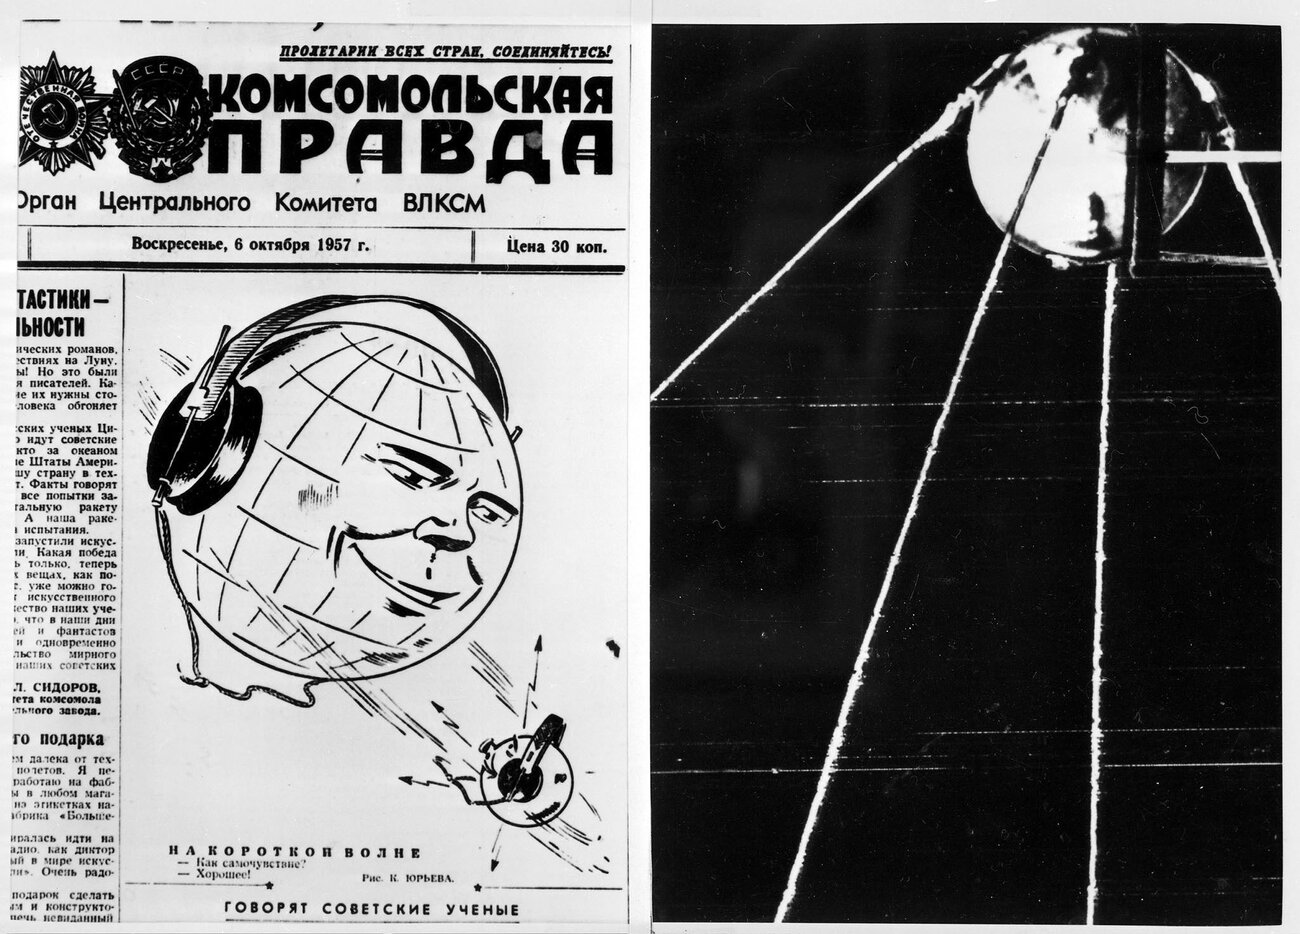 (Left) The front page of the Soviet newspaper Pravda after the launch of the world's first satellite, Sputnik, on Oct. 4, 1957. (Right) A view of Sputnik. (AFP/Getty Images)